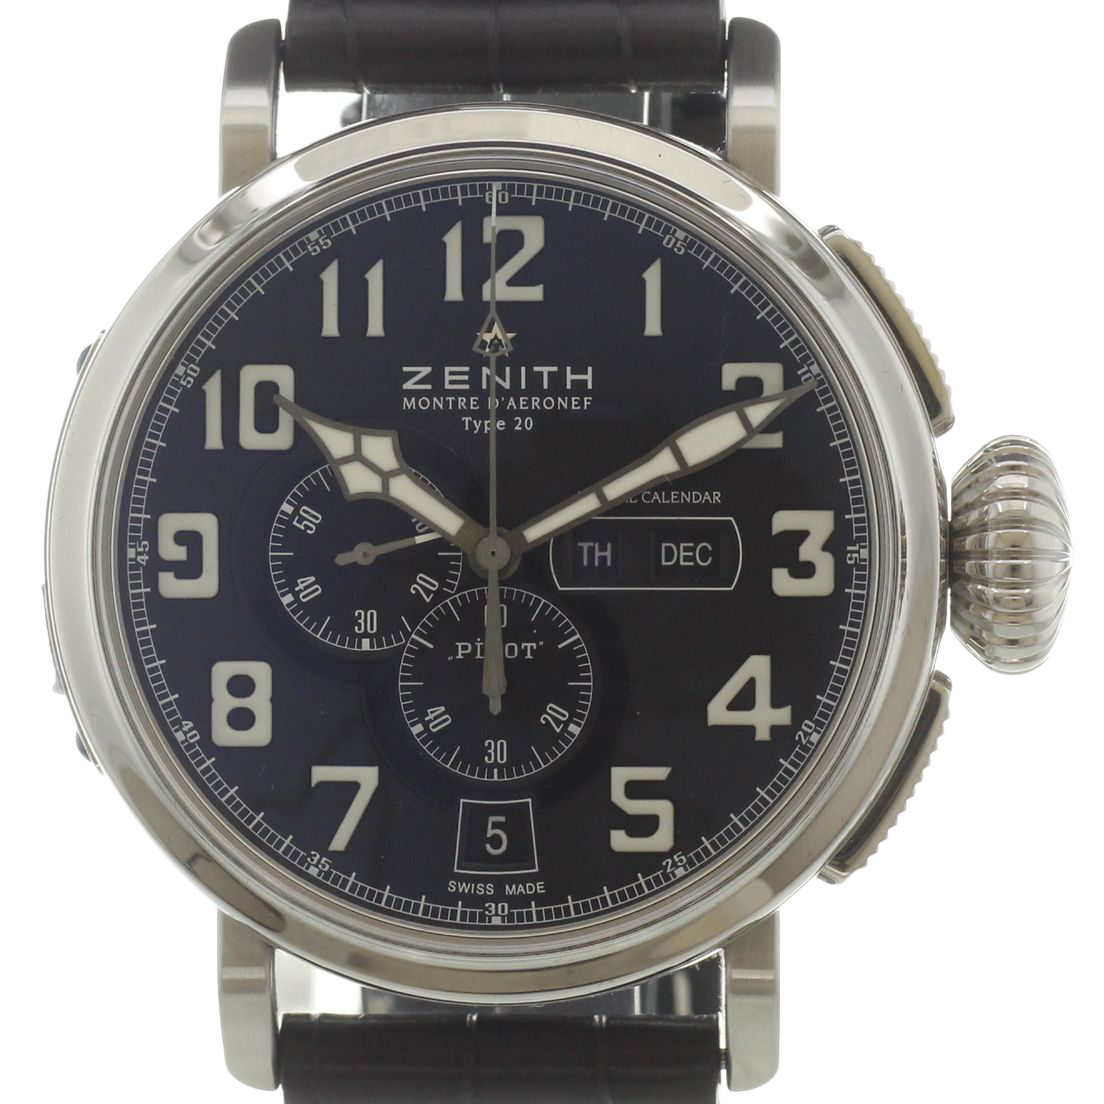 //chronextcms.imgix.net/content/_magazine/Category_Pilot_Watches/zenith.pilot-montre-d-aeronef-type-20.03-2430-4054-21-c721.png